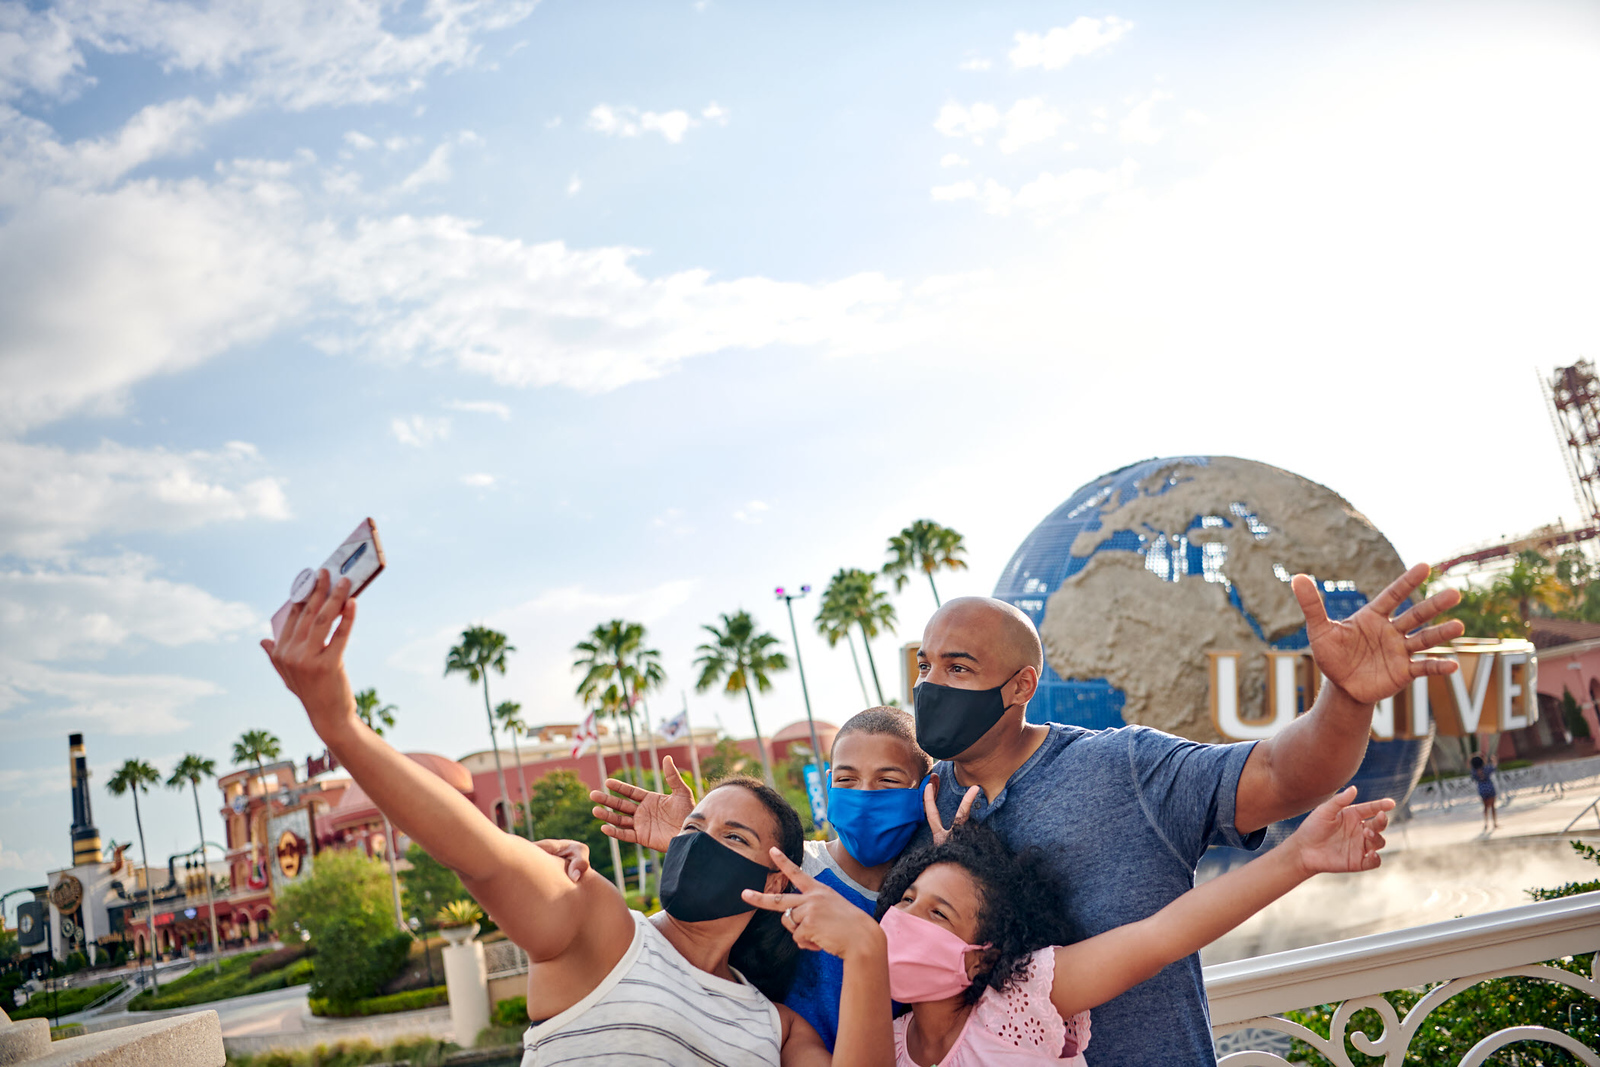 """Universal Orlando Resort Offers """"Free Days"""" With No Blockout Dates As Part Of Incredible Deals To Visit The Award-Winning Theme Park Destination"""